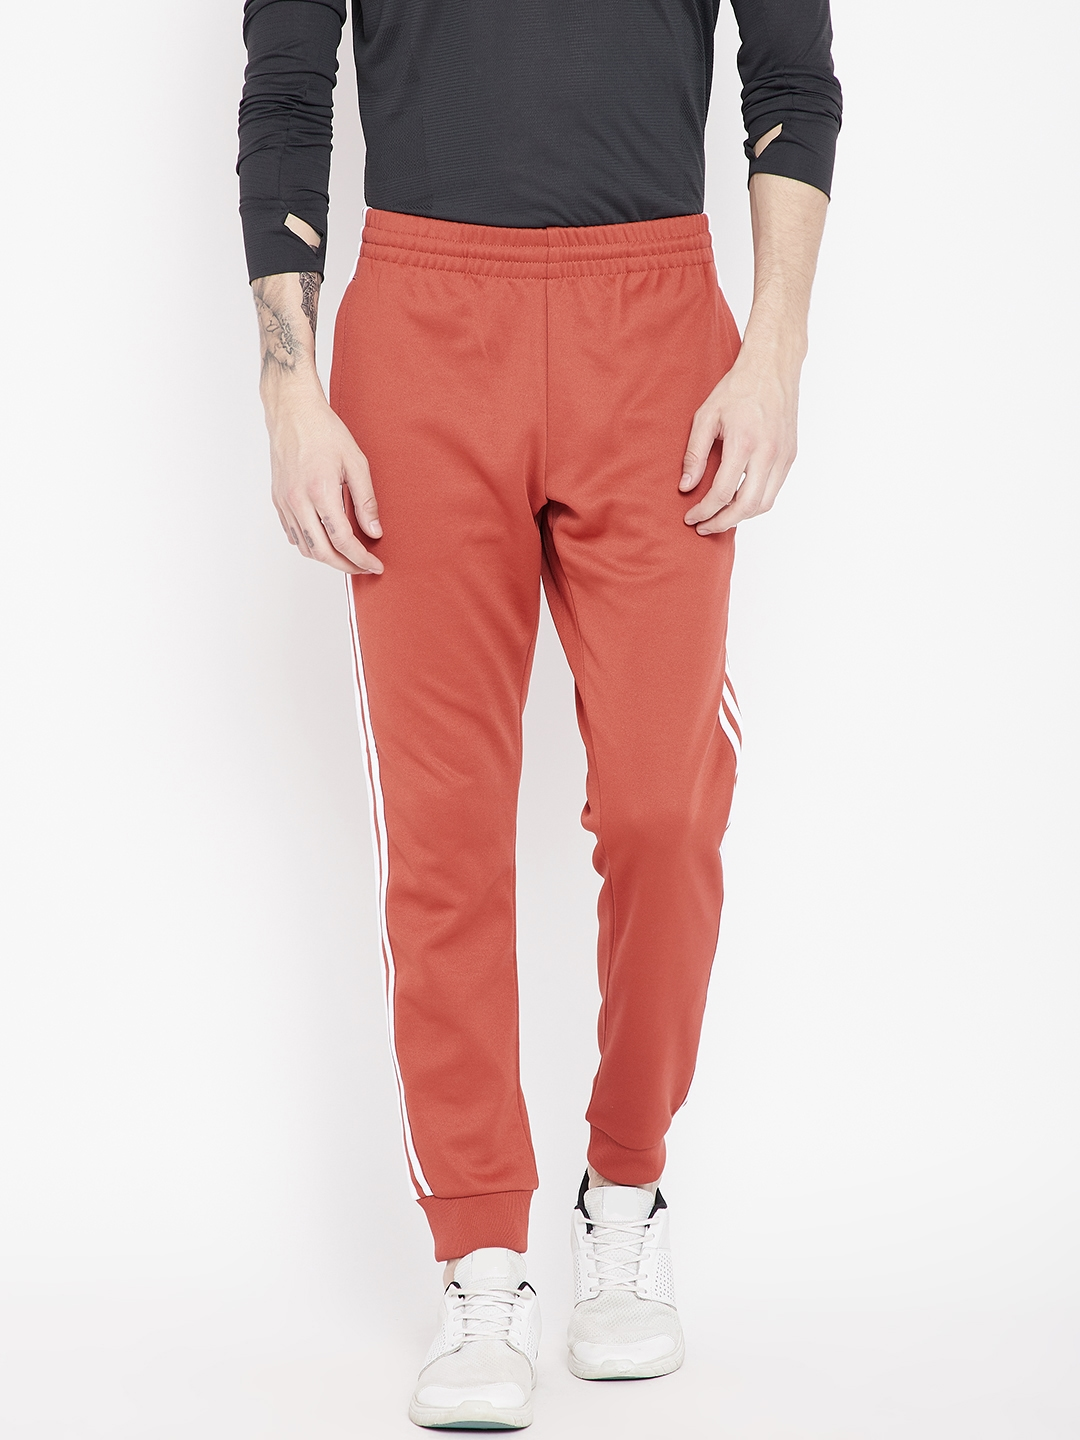 Buy ADIDAS Originals Men Rust Orange Solid Slim Fit SST